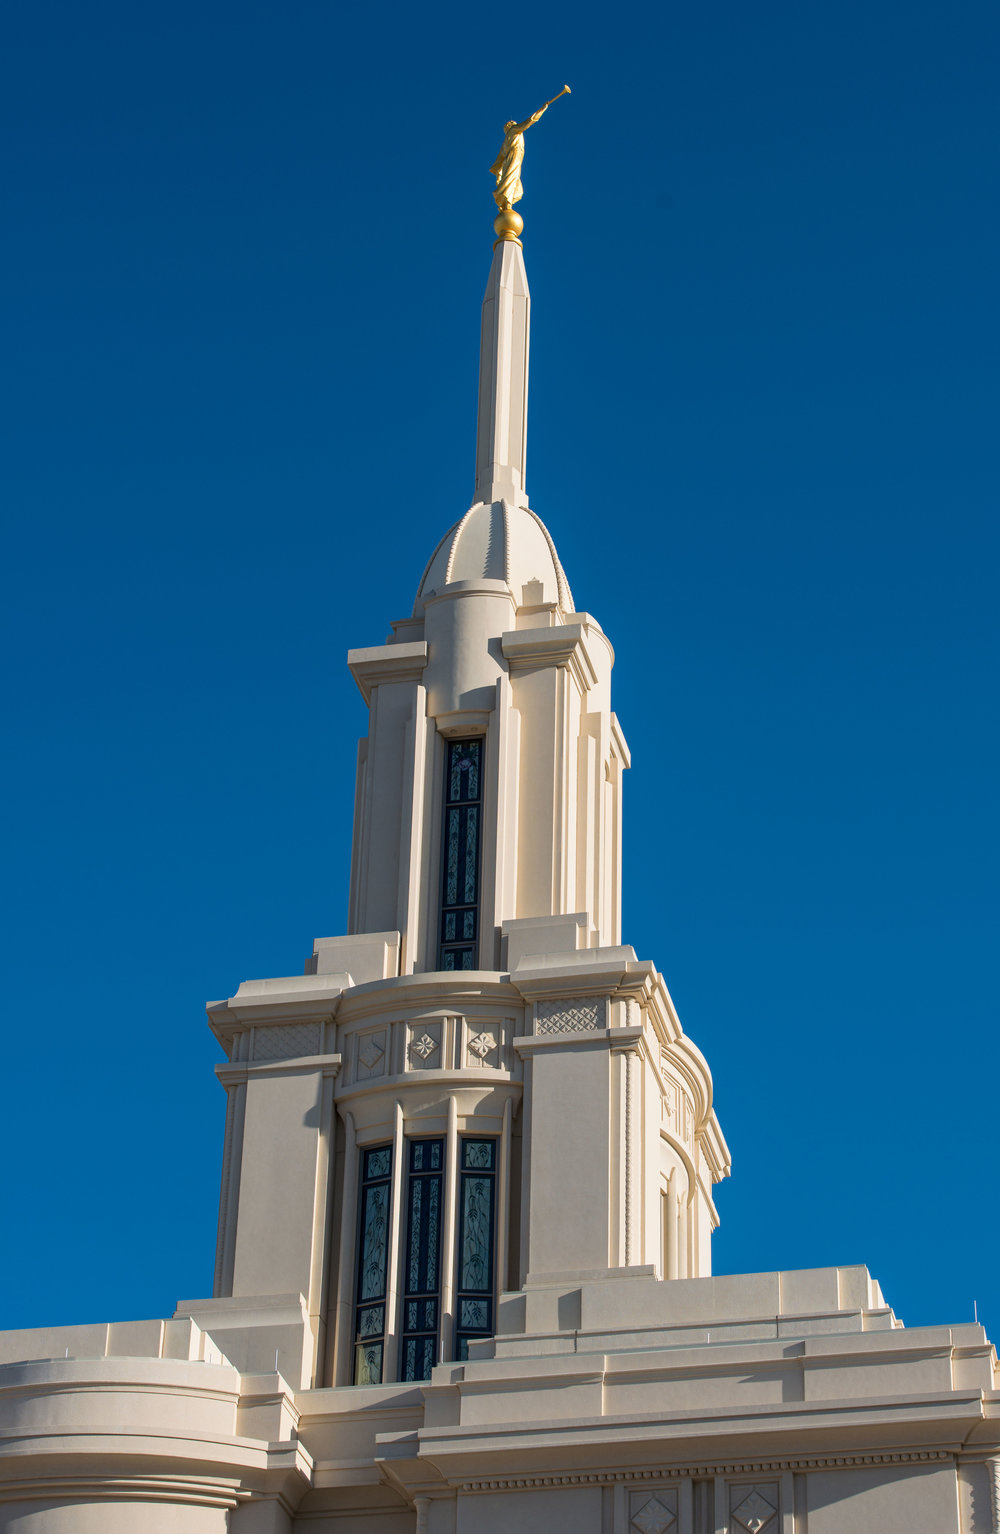 Holdman_Studios_Stained_Art_Glass_Payson_Utah_Temple_Apple_Blossoms_Leaves_DNA_Spiral_Exterior_Spire_Tower_Windows_Closeup.jpg